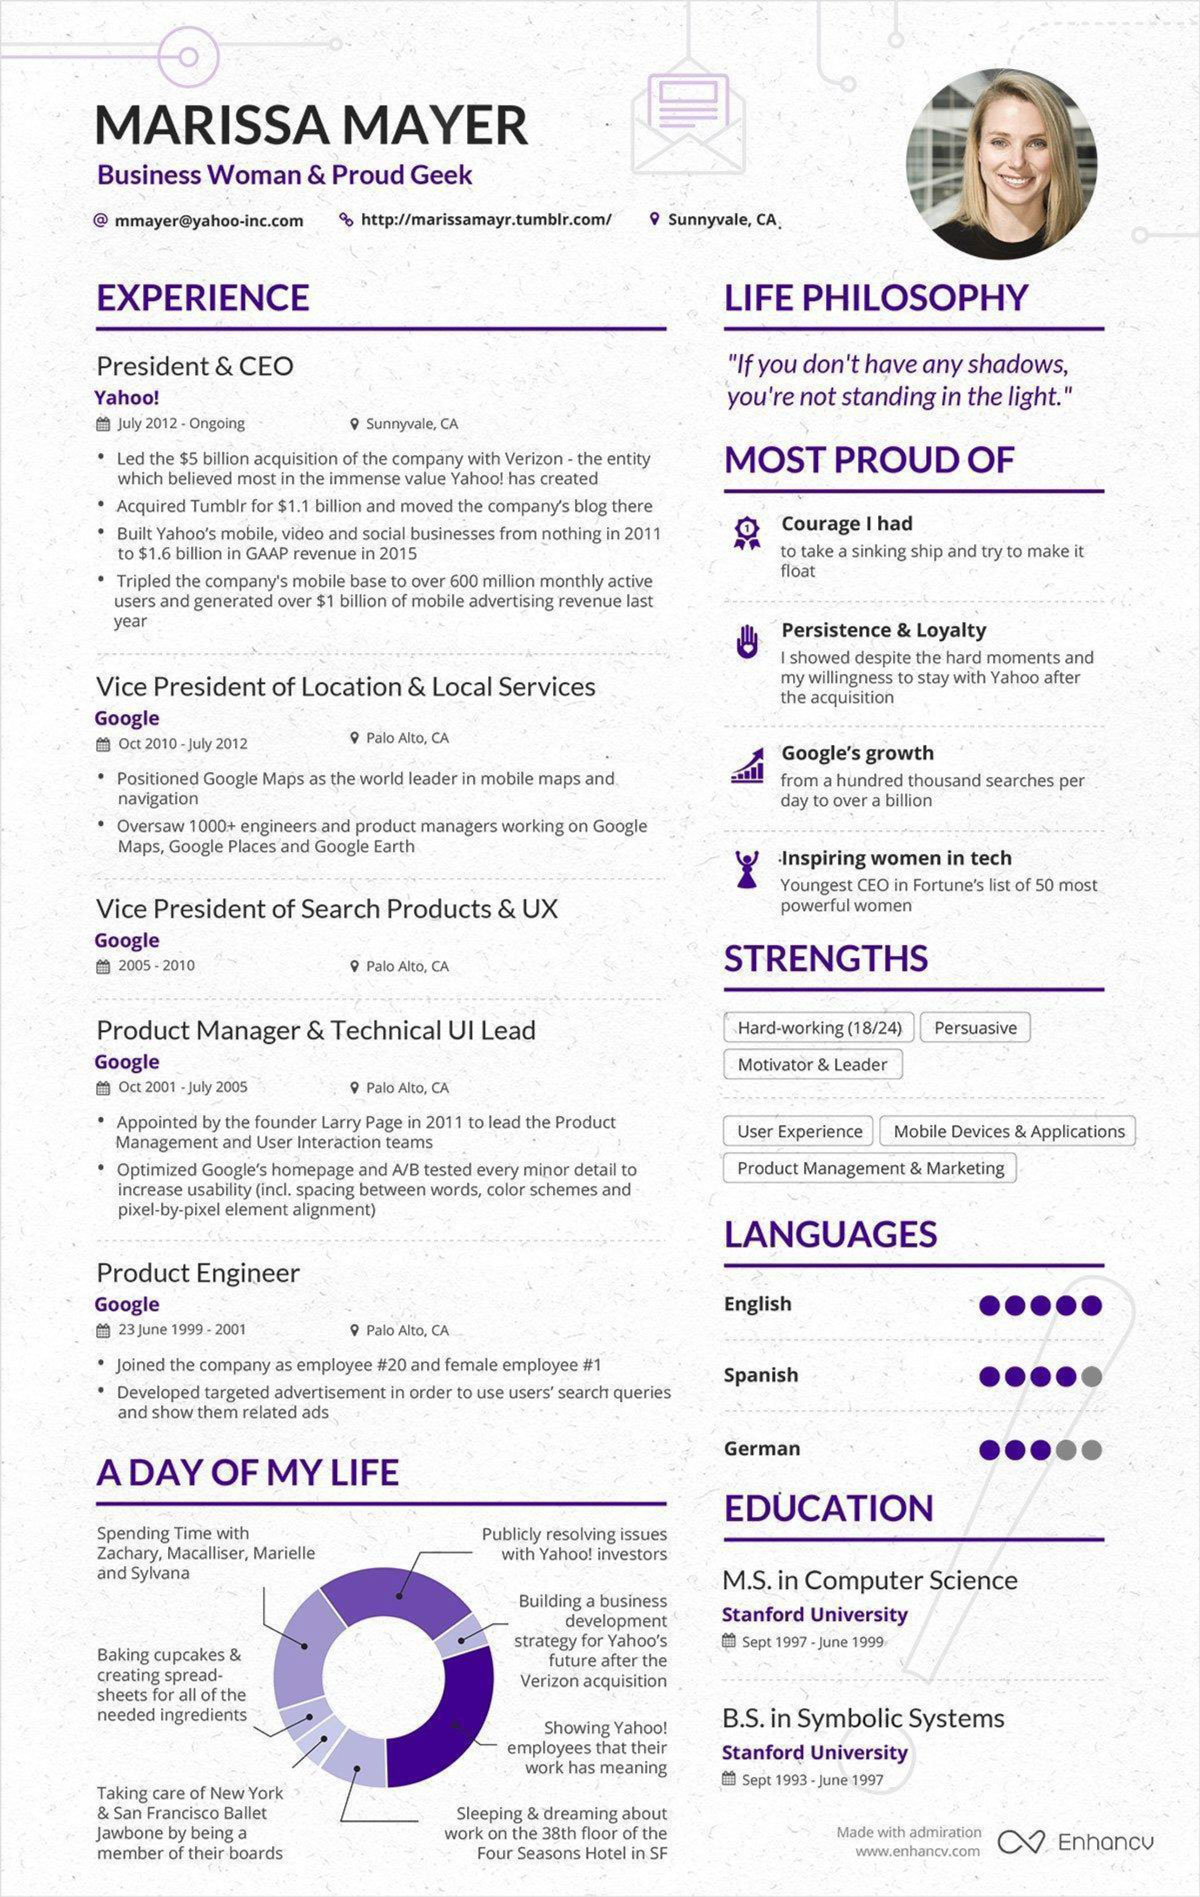 marissa mayer u2019s resume has gone viral again  but is it all